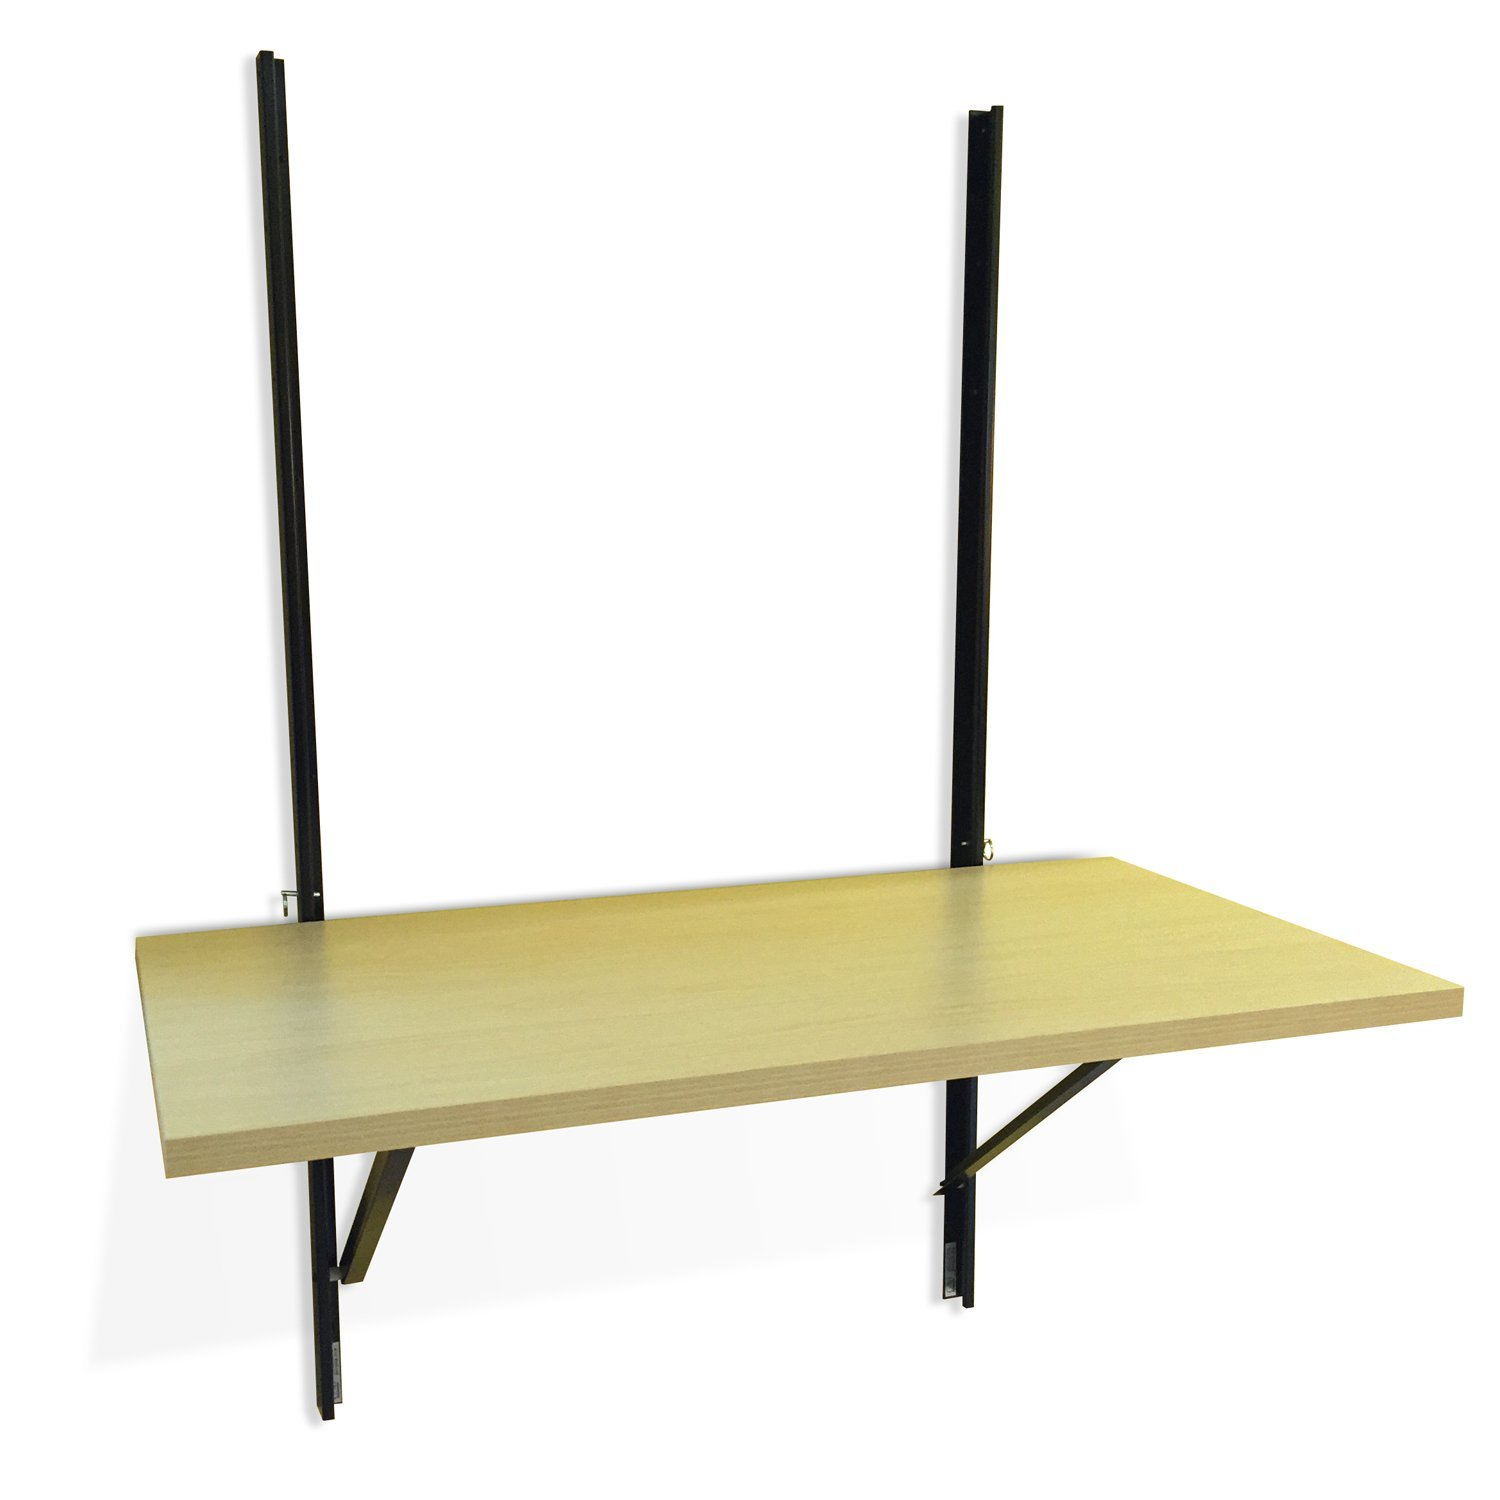 Wall Mounted Folding Workbench | Folding Workbench Wall Mounted | Wall Mounted Hinged Workbench